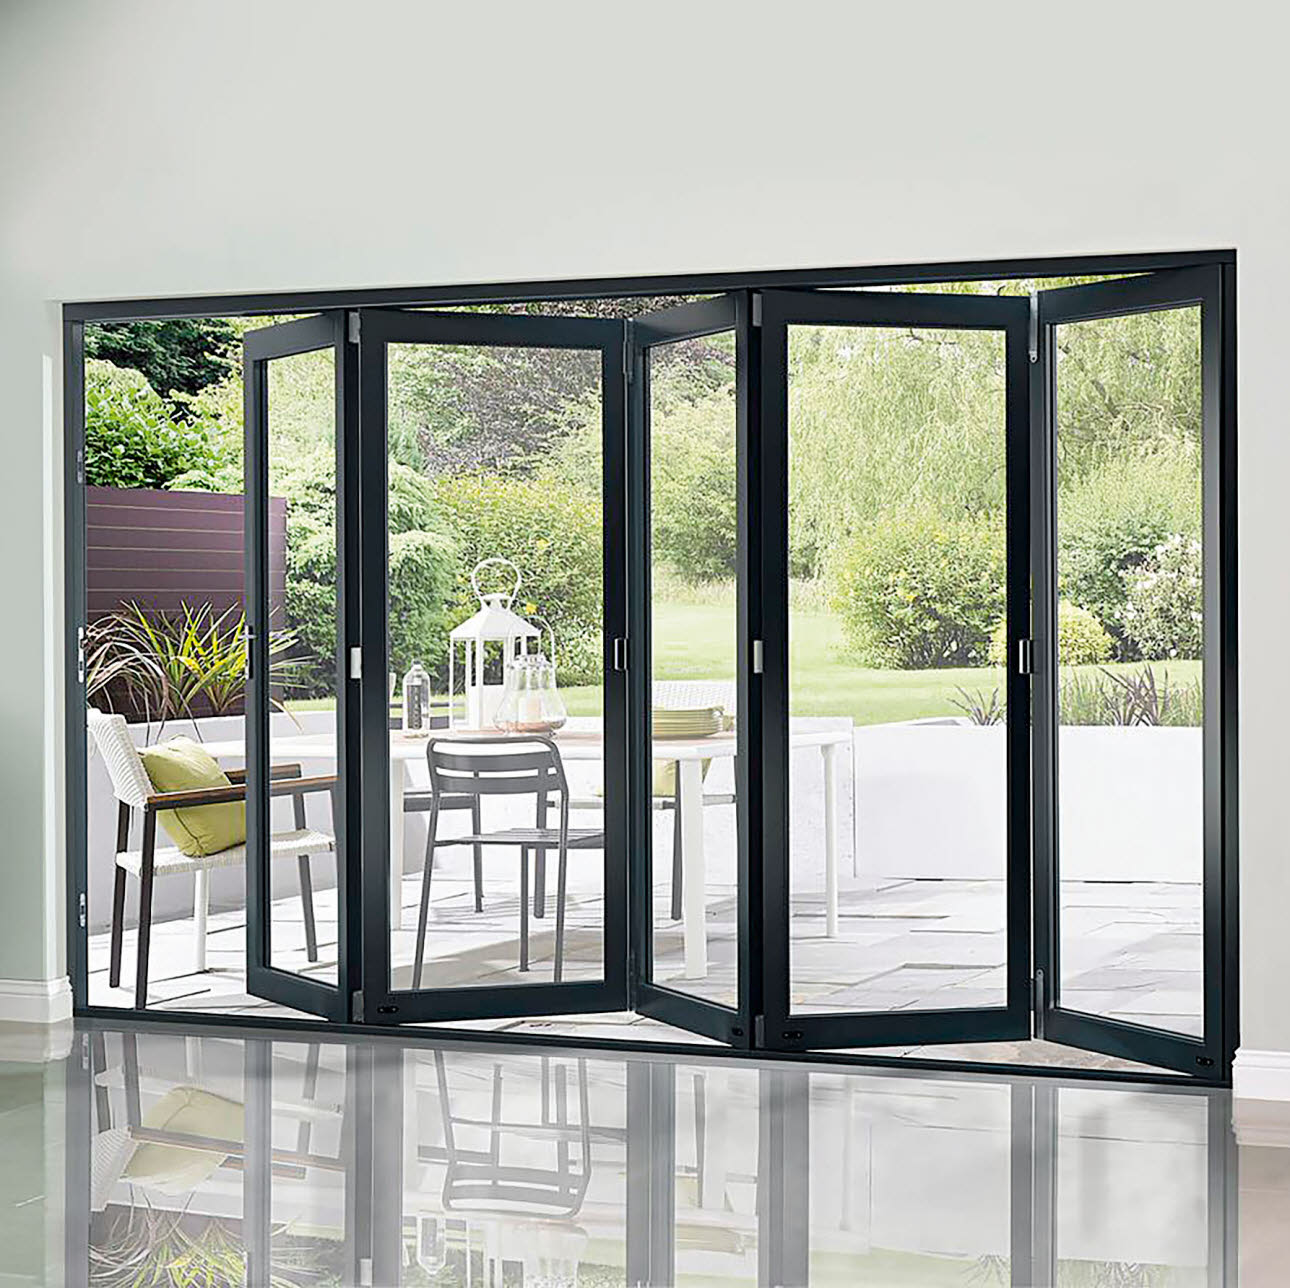 What You Need To Know Before Selecting A New Patio Door